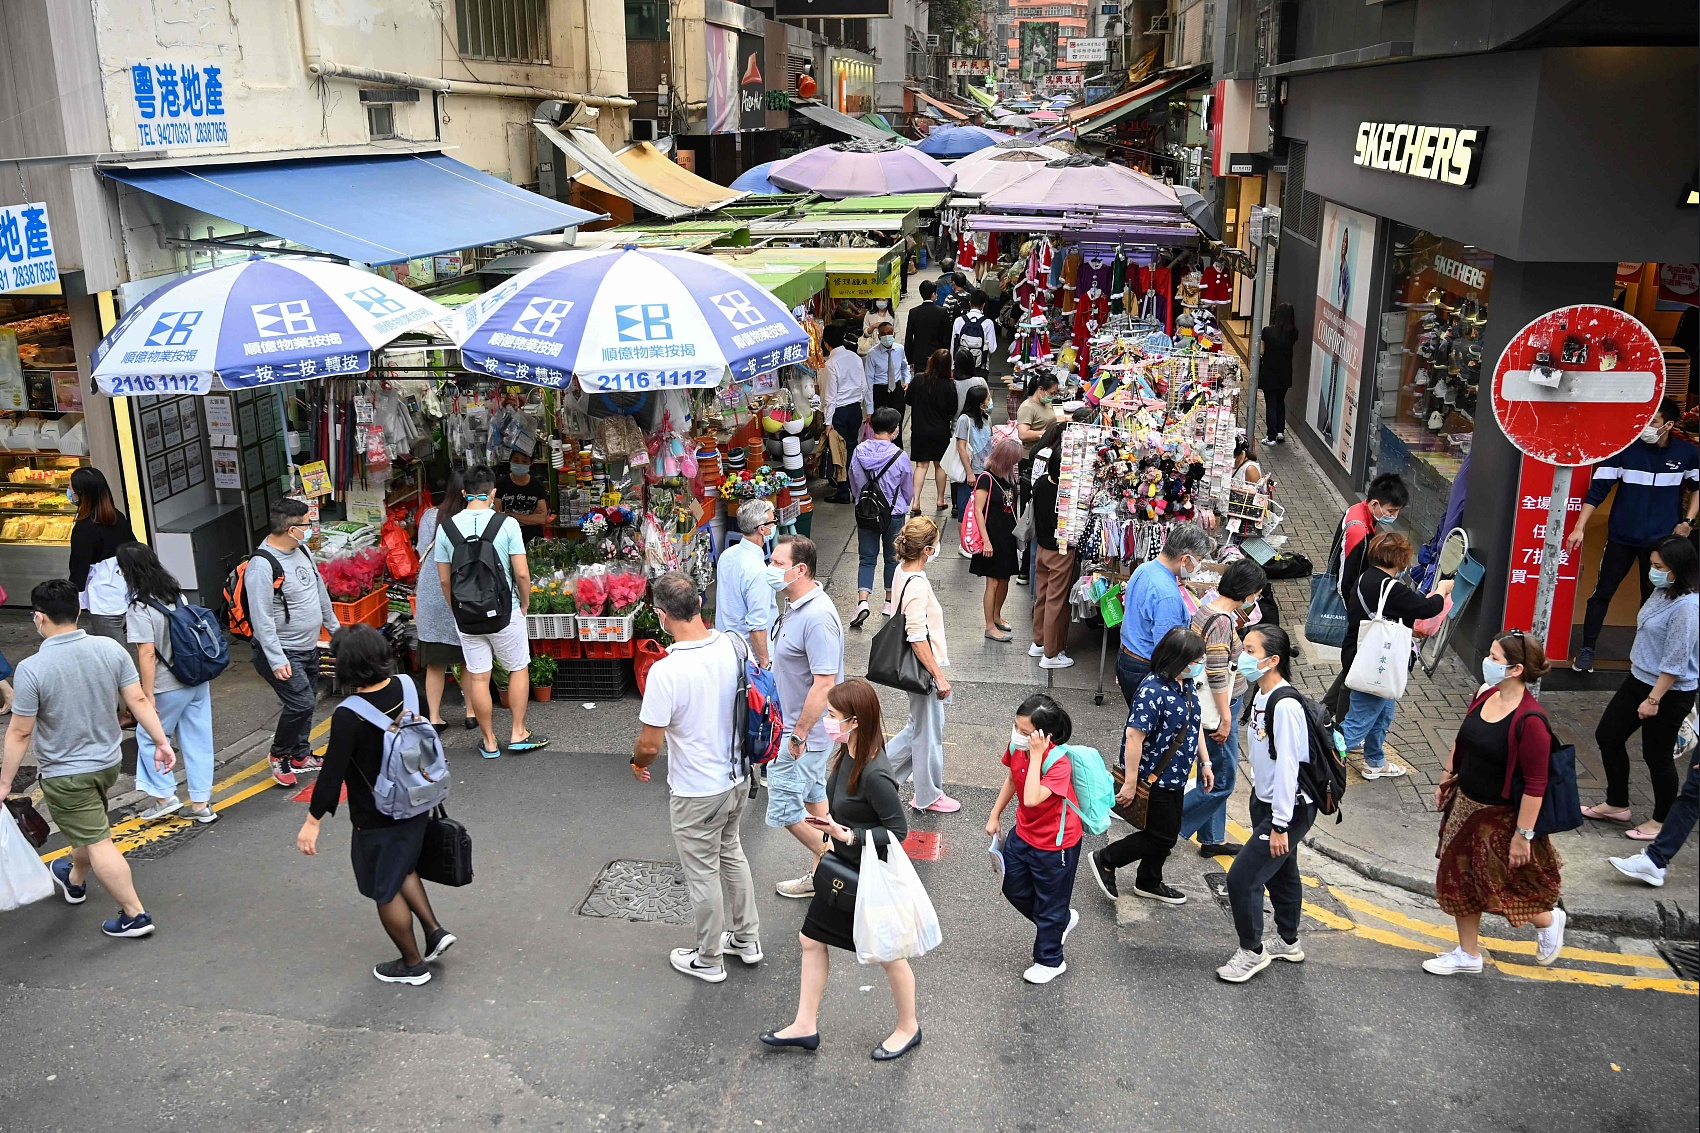 Hong Kong reports 84 new COVID-19 cases, 6,123 in total